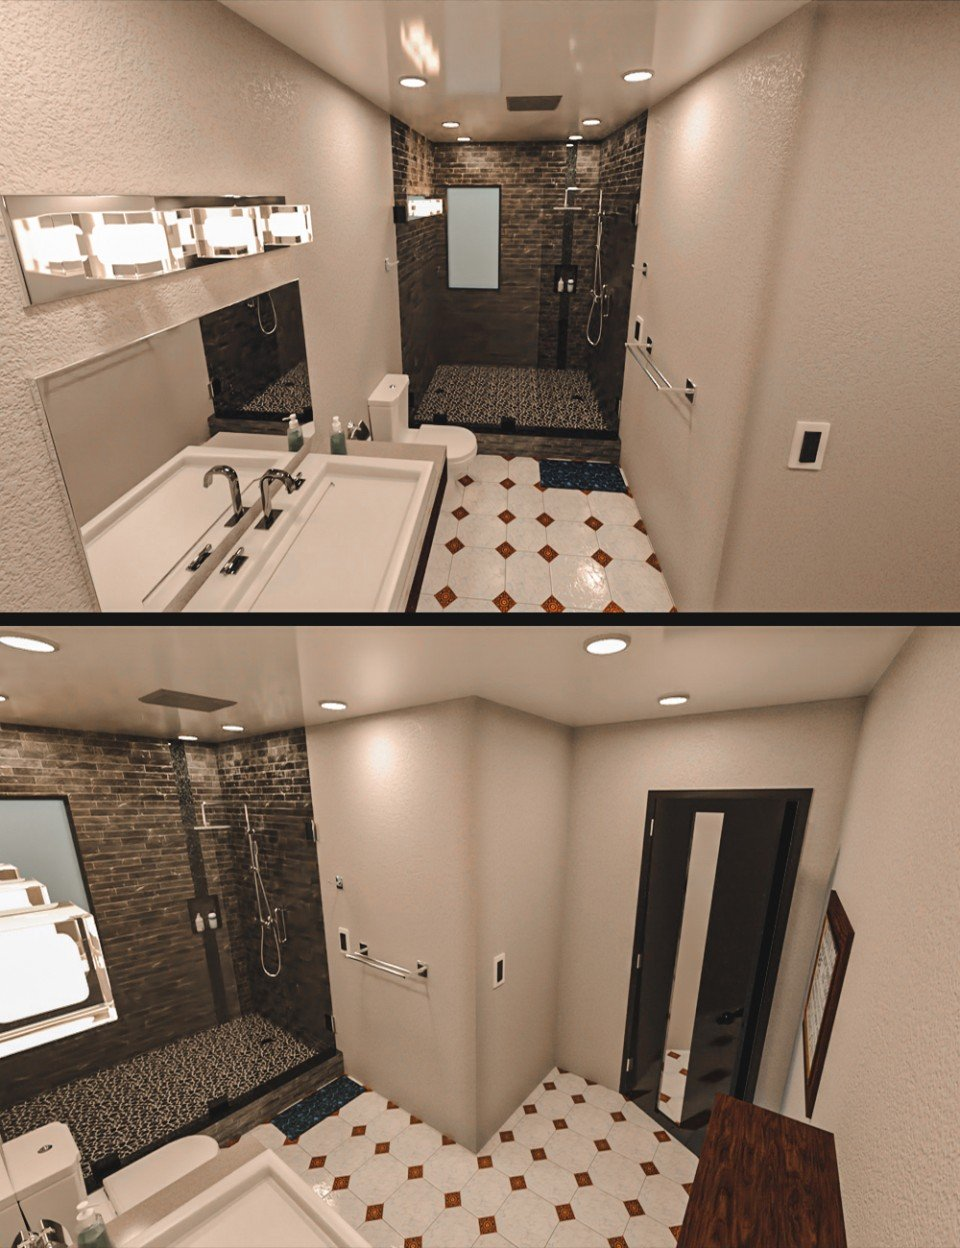 Modern Tidy Bathroom_DAZ3D下载站